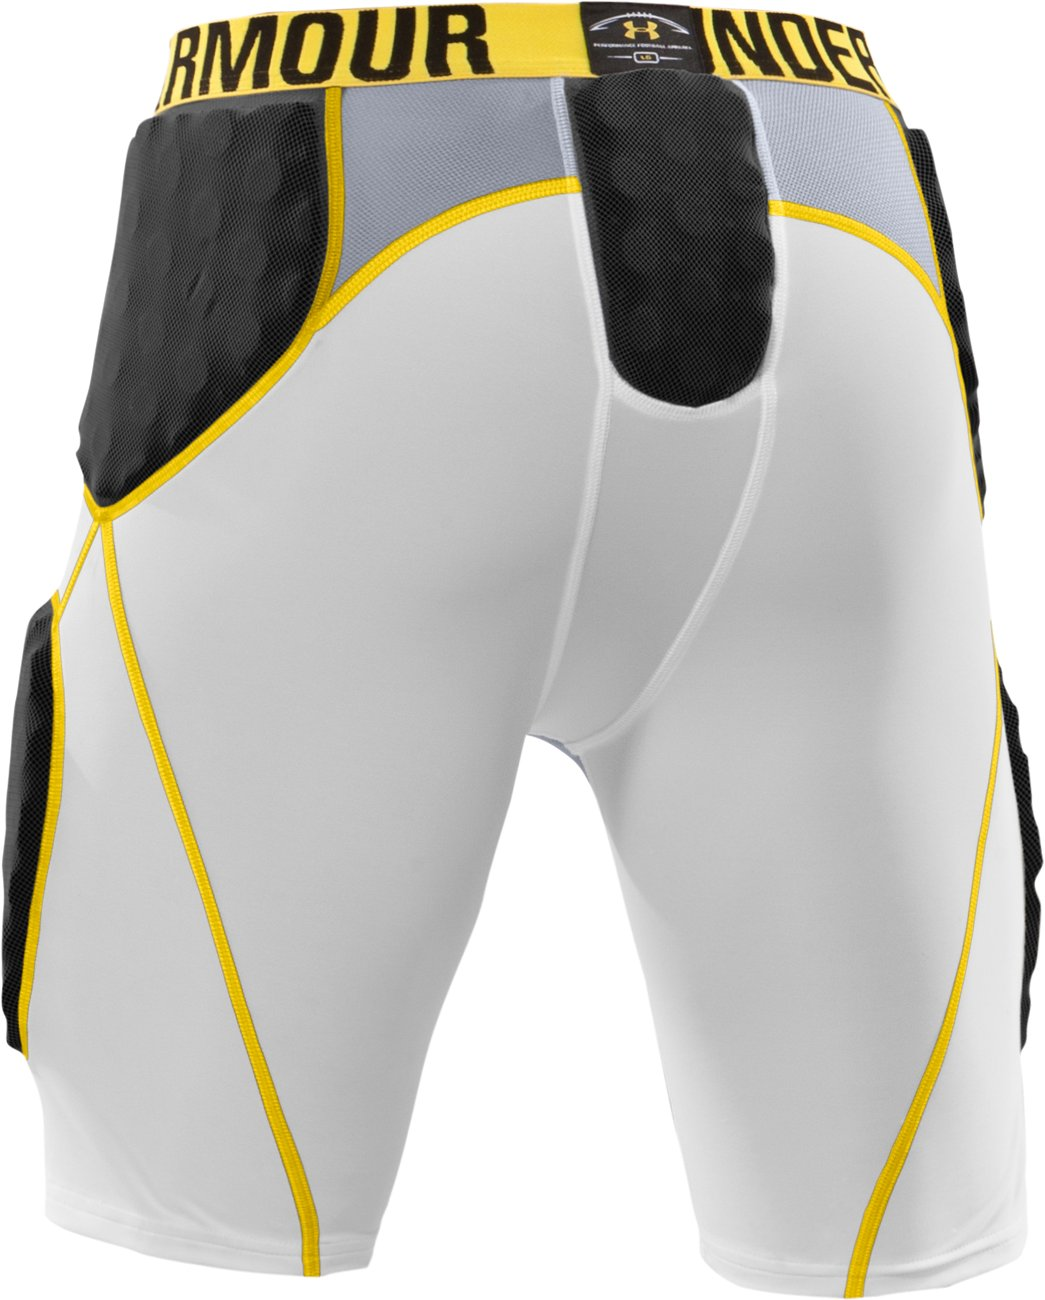 Men's MPZ® 5-Pad Armour® Girdle, White